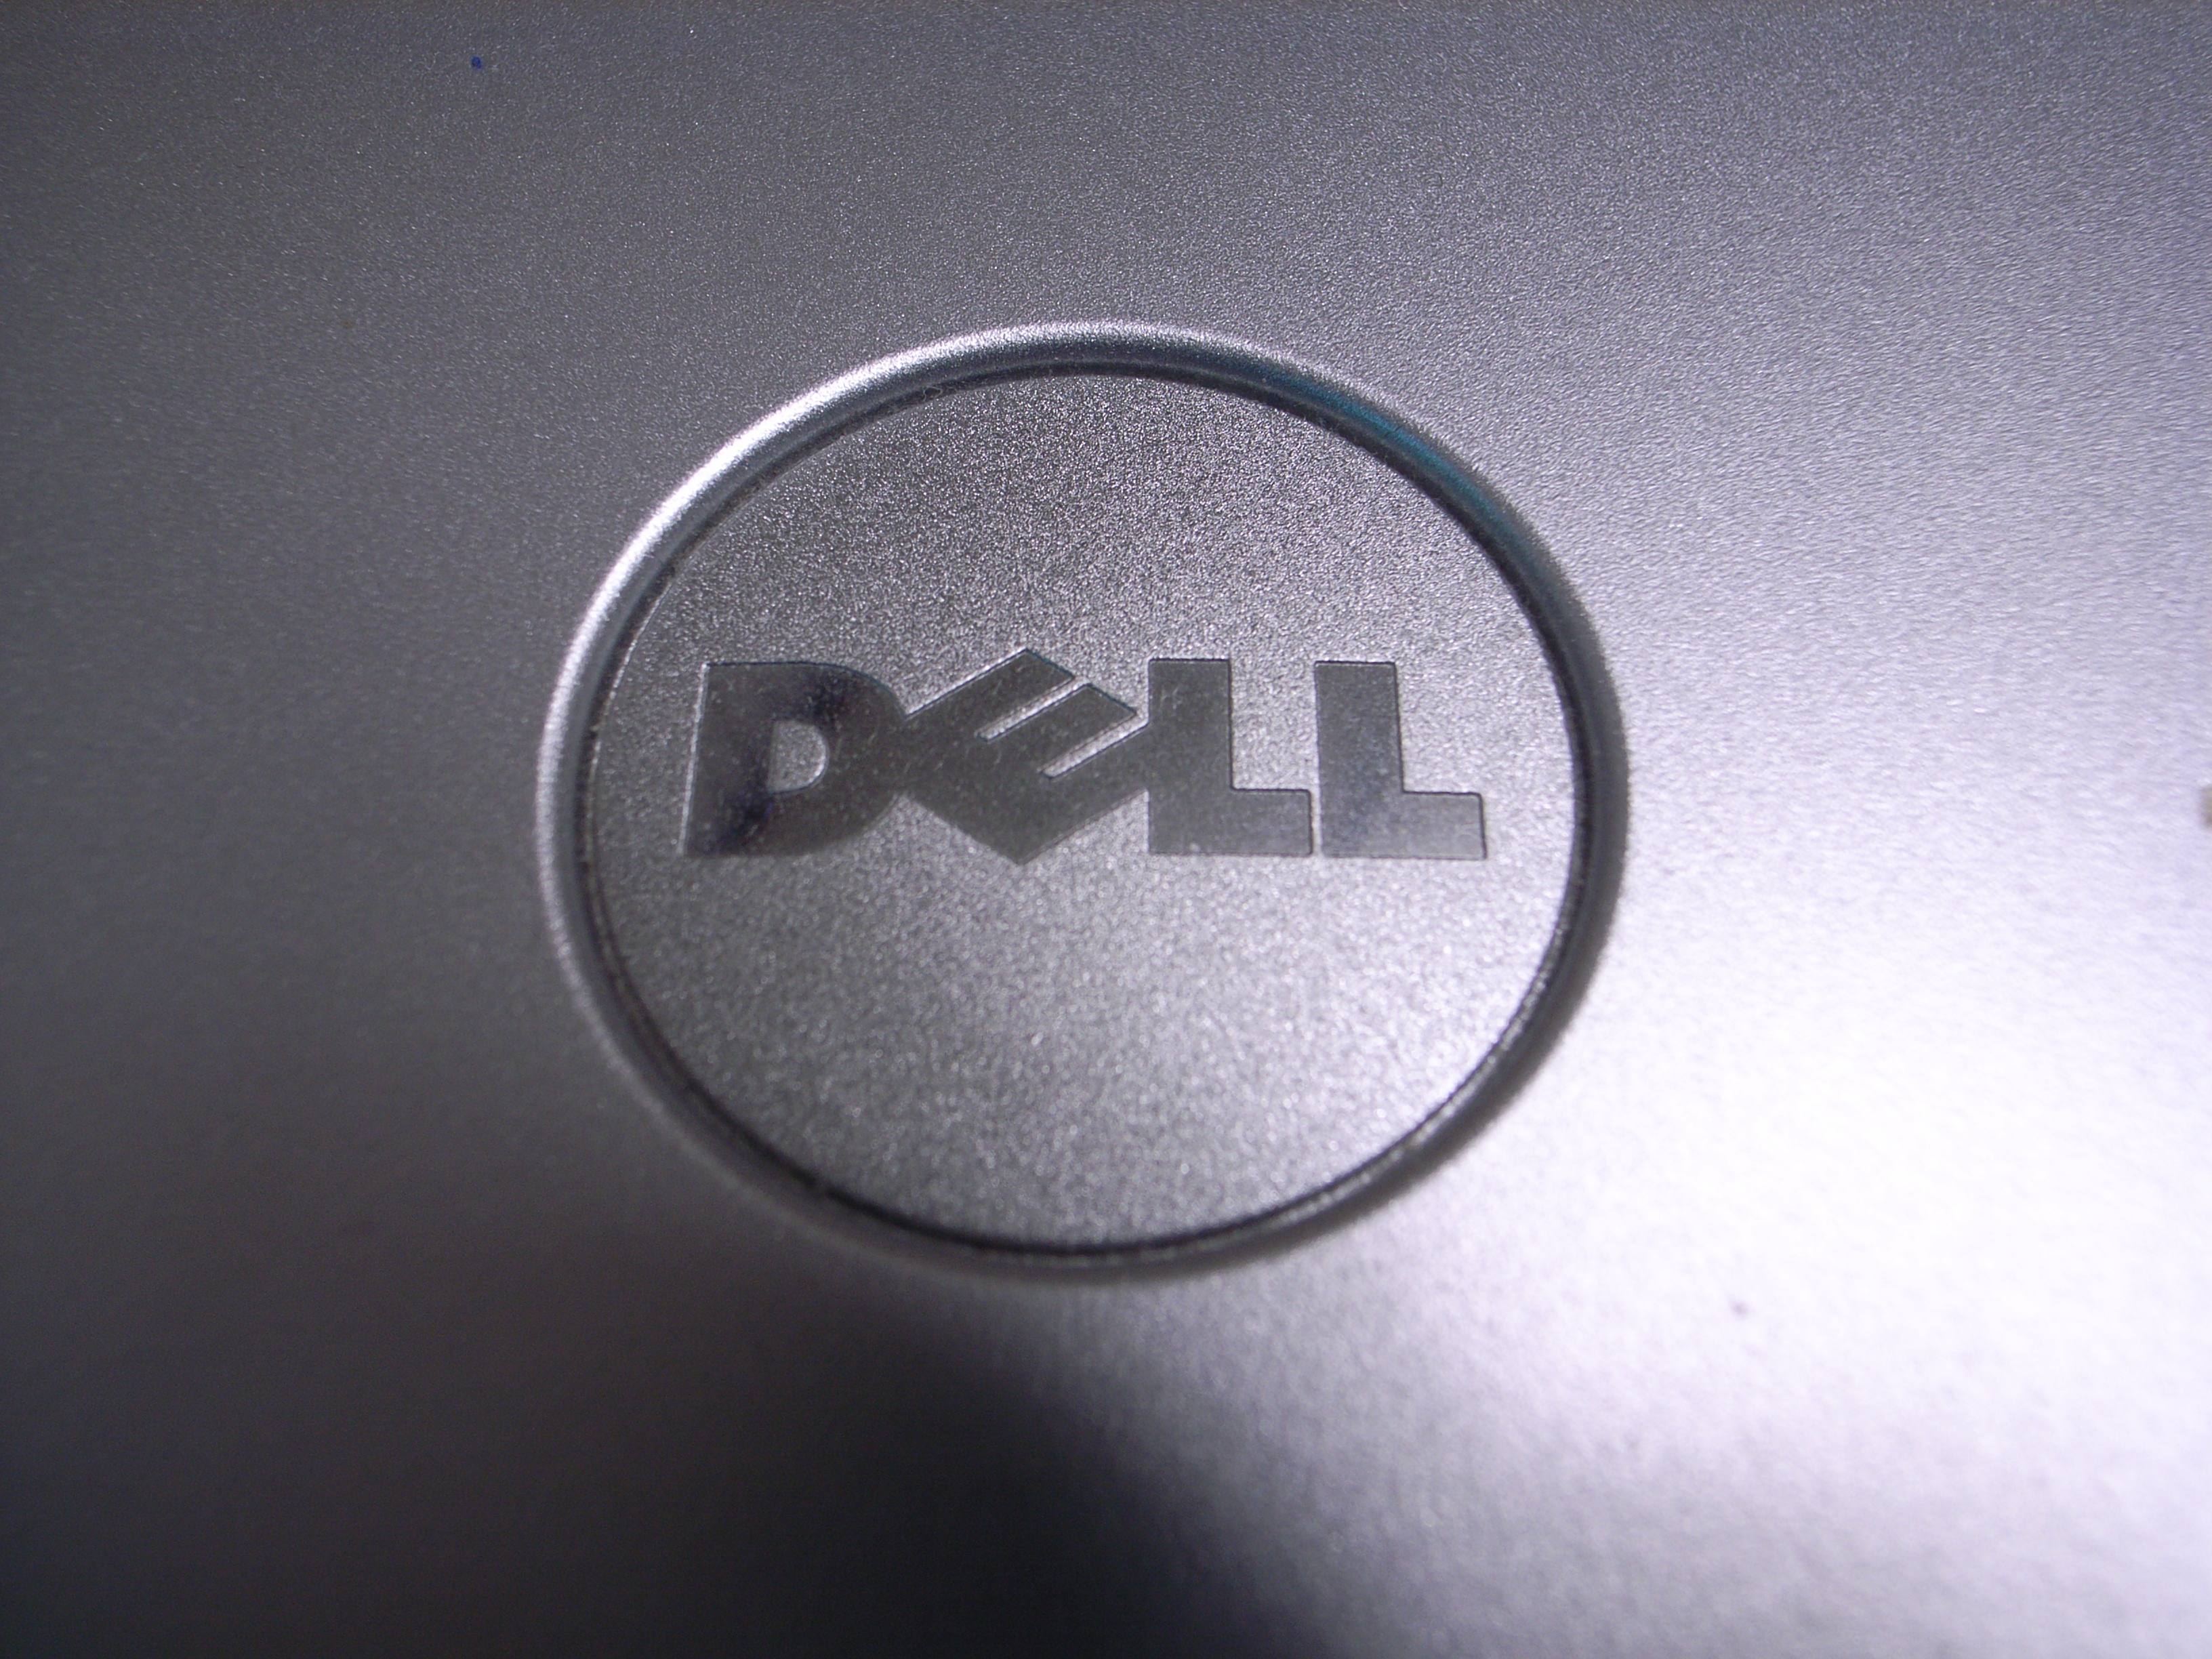 venturebeat.com - Laz Vekiarides, ClearSky Data - Newly public Dell could heat up the data storage M&A market